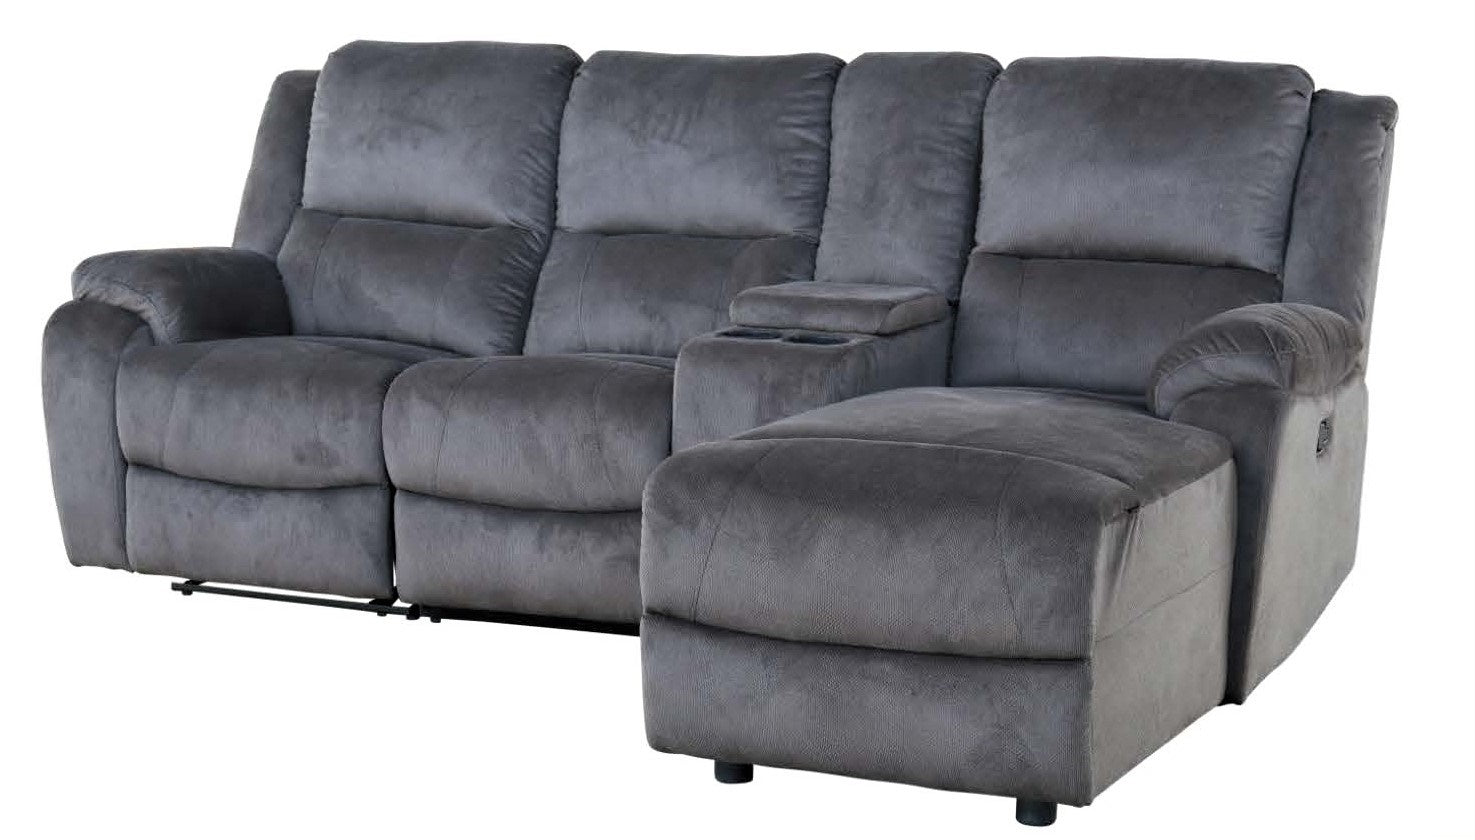 Austin 3 seater Chaise Lounge